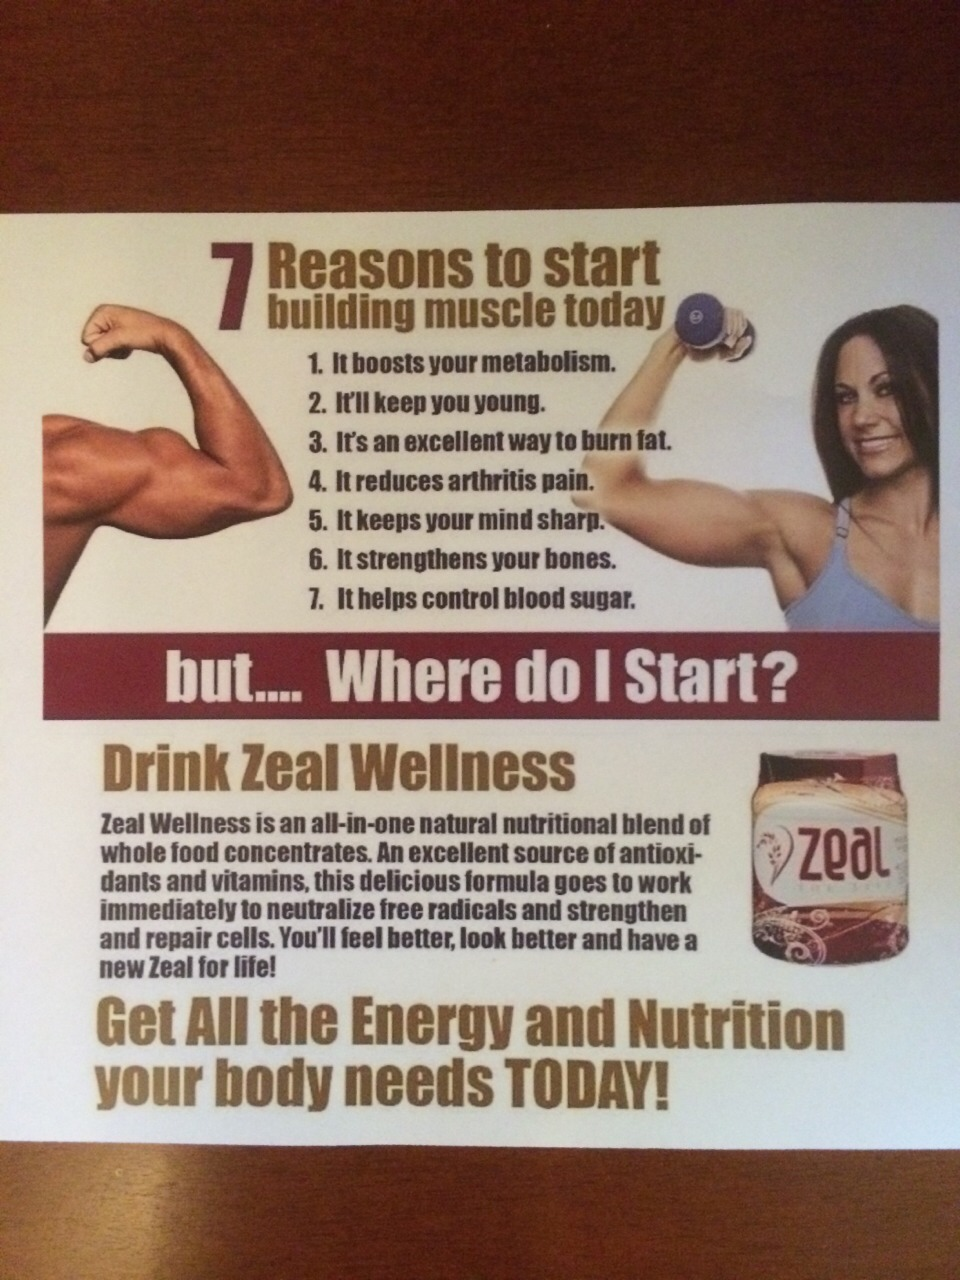 You would have to take 56 pills to receive the nutrients, antioxidants, and vitamins. Instead drink one 6oz of the Zeal Wellness!